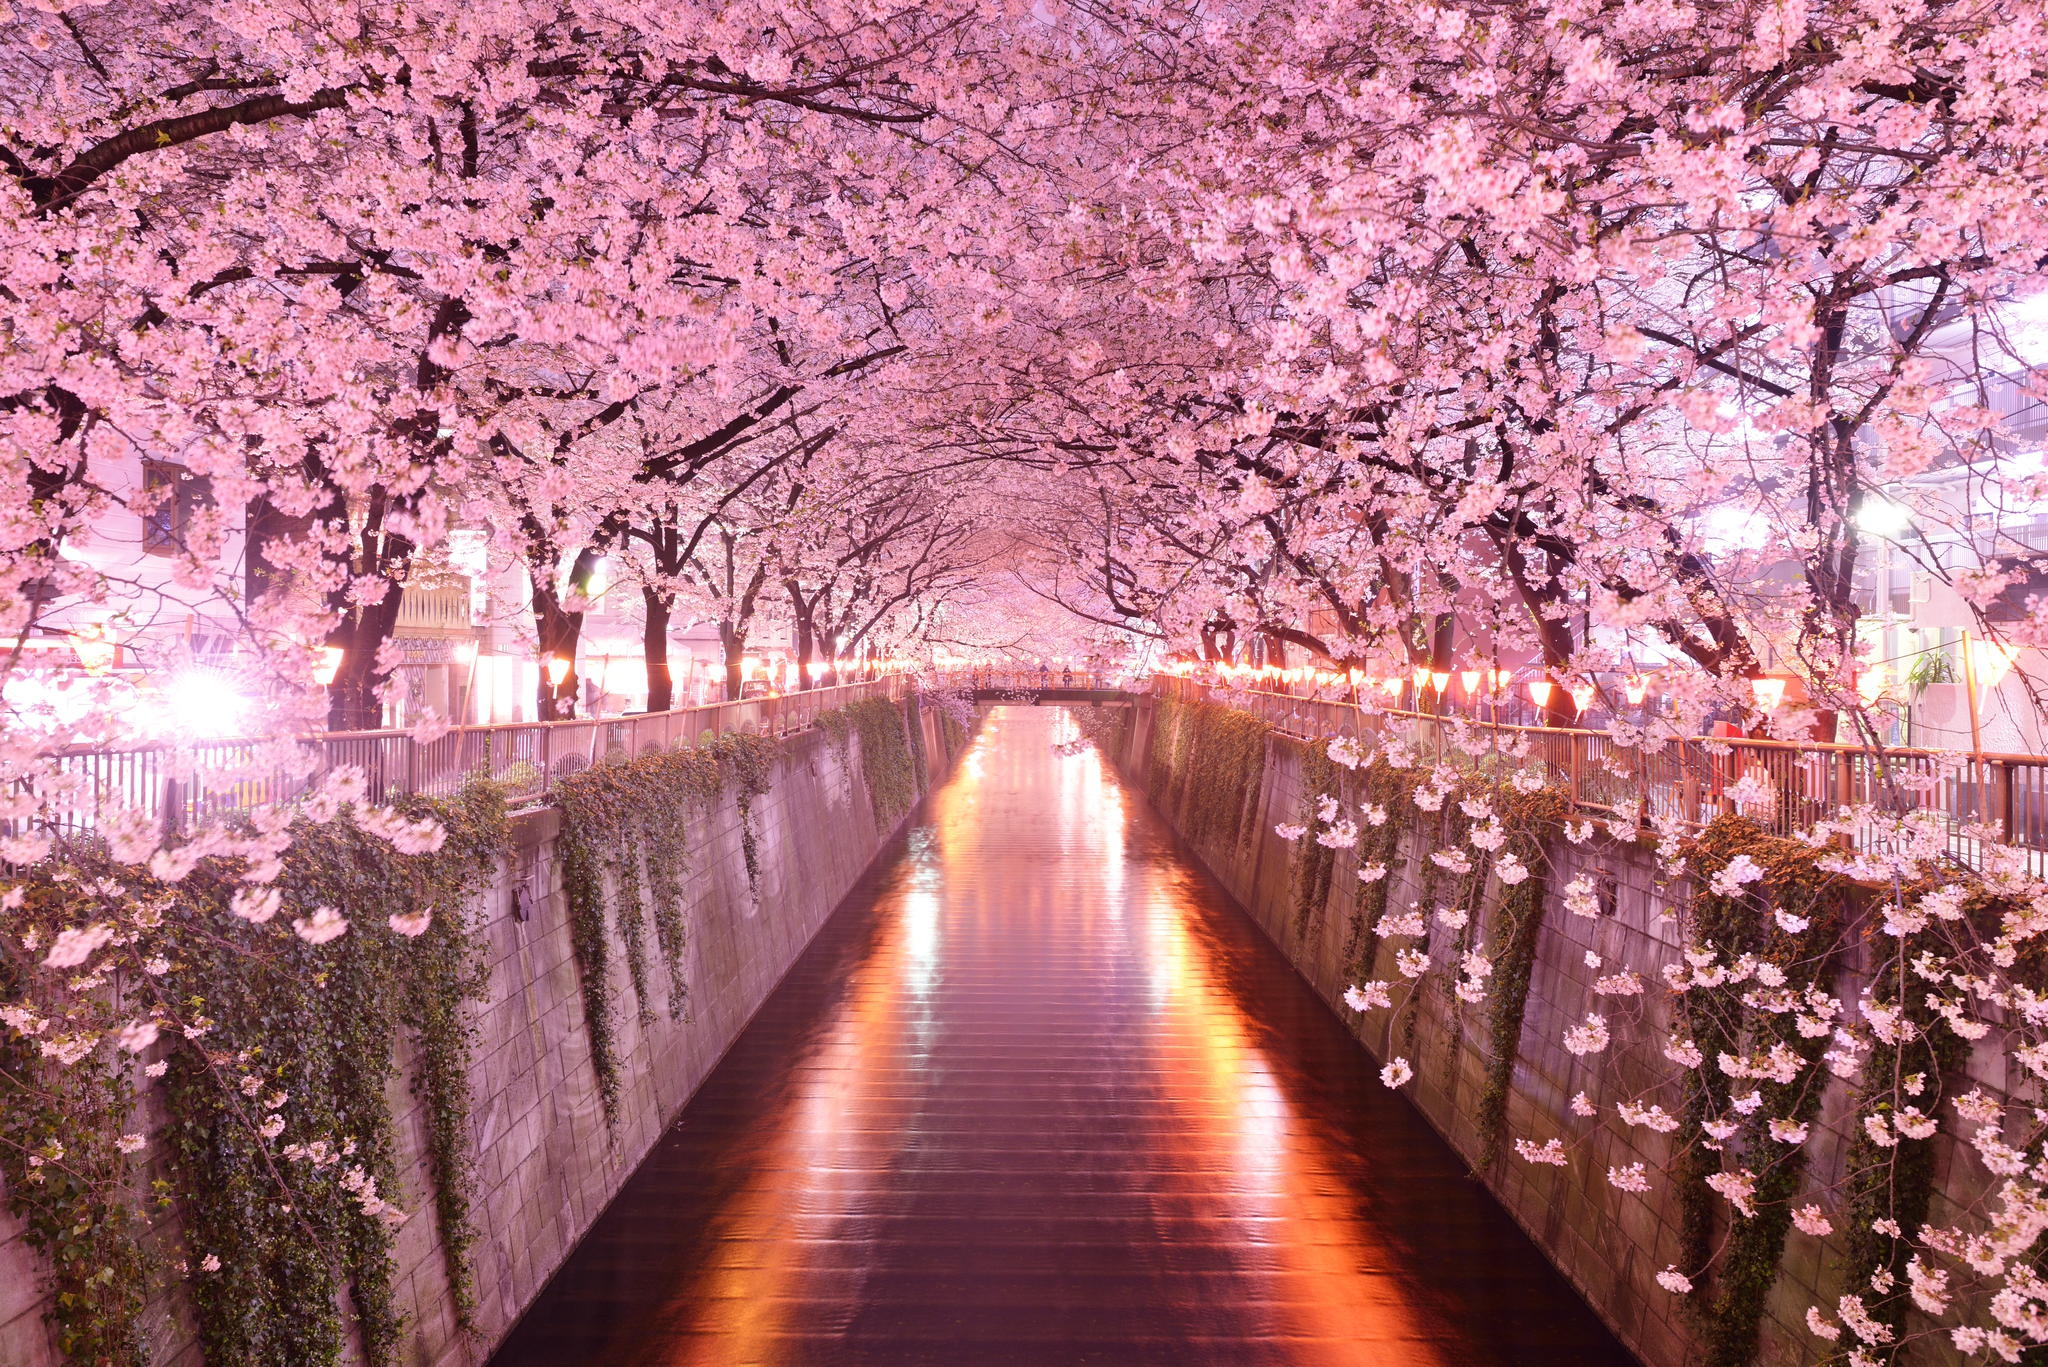 japan is my dream place to One international tefl academy alum shares the easiest way to fulfill your dreams by the easiest way to fulfill your dreams - teach english in japan.